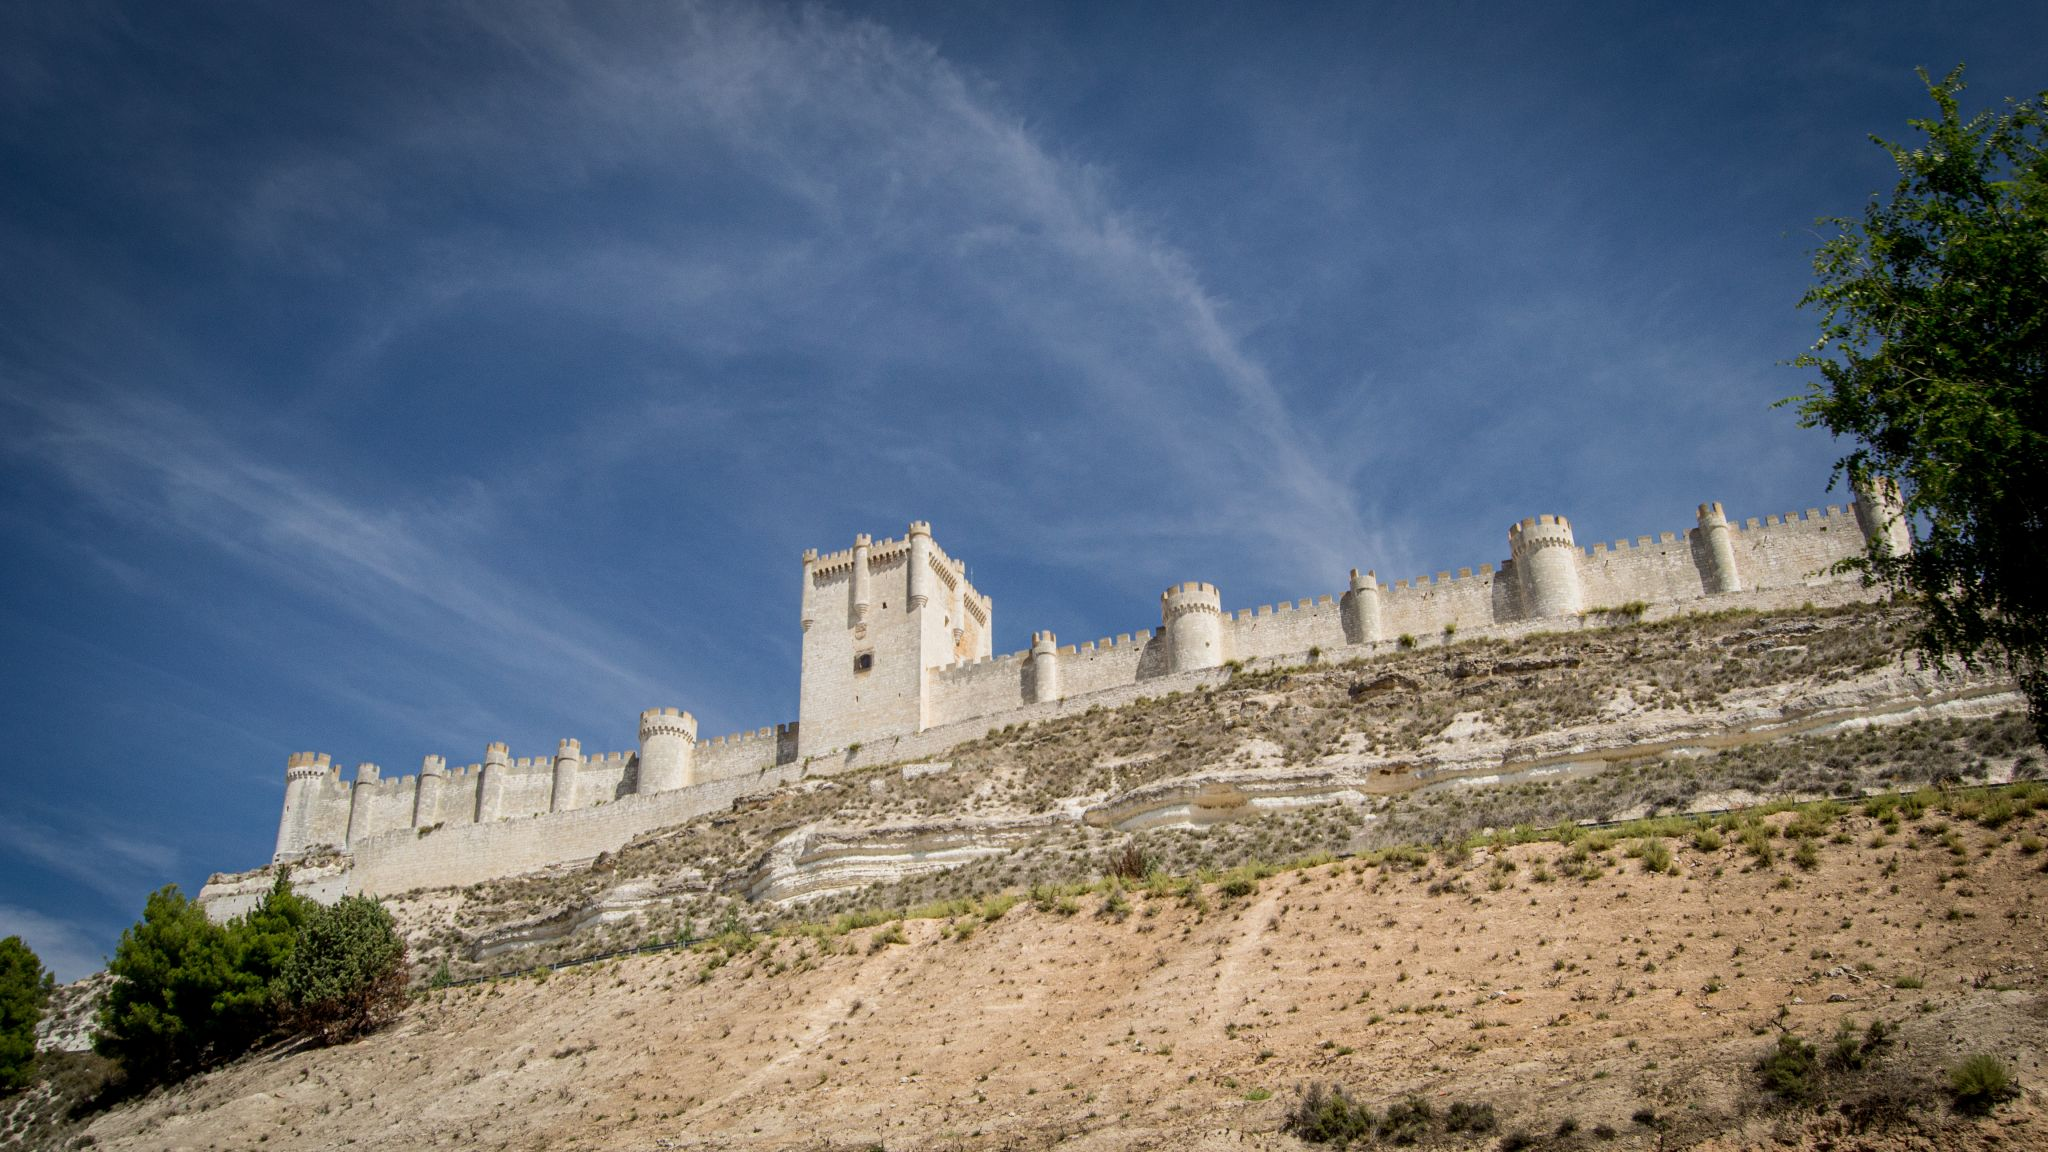 Peñafiel Castle, Spain